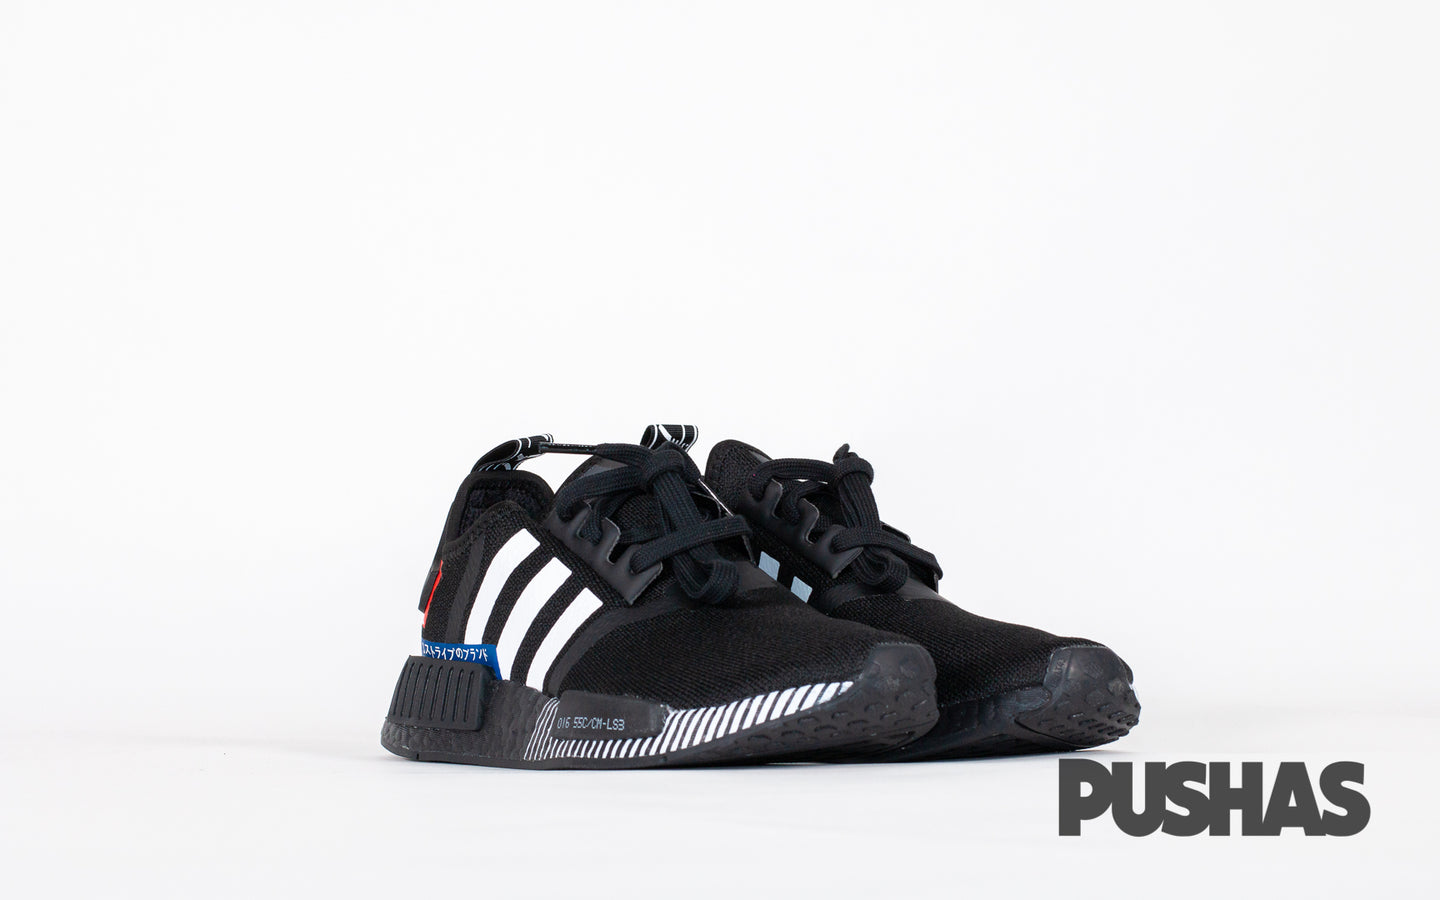 pushas-adidas-NMD-R1-Japan-Pack-Black-2020